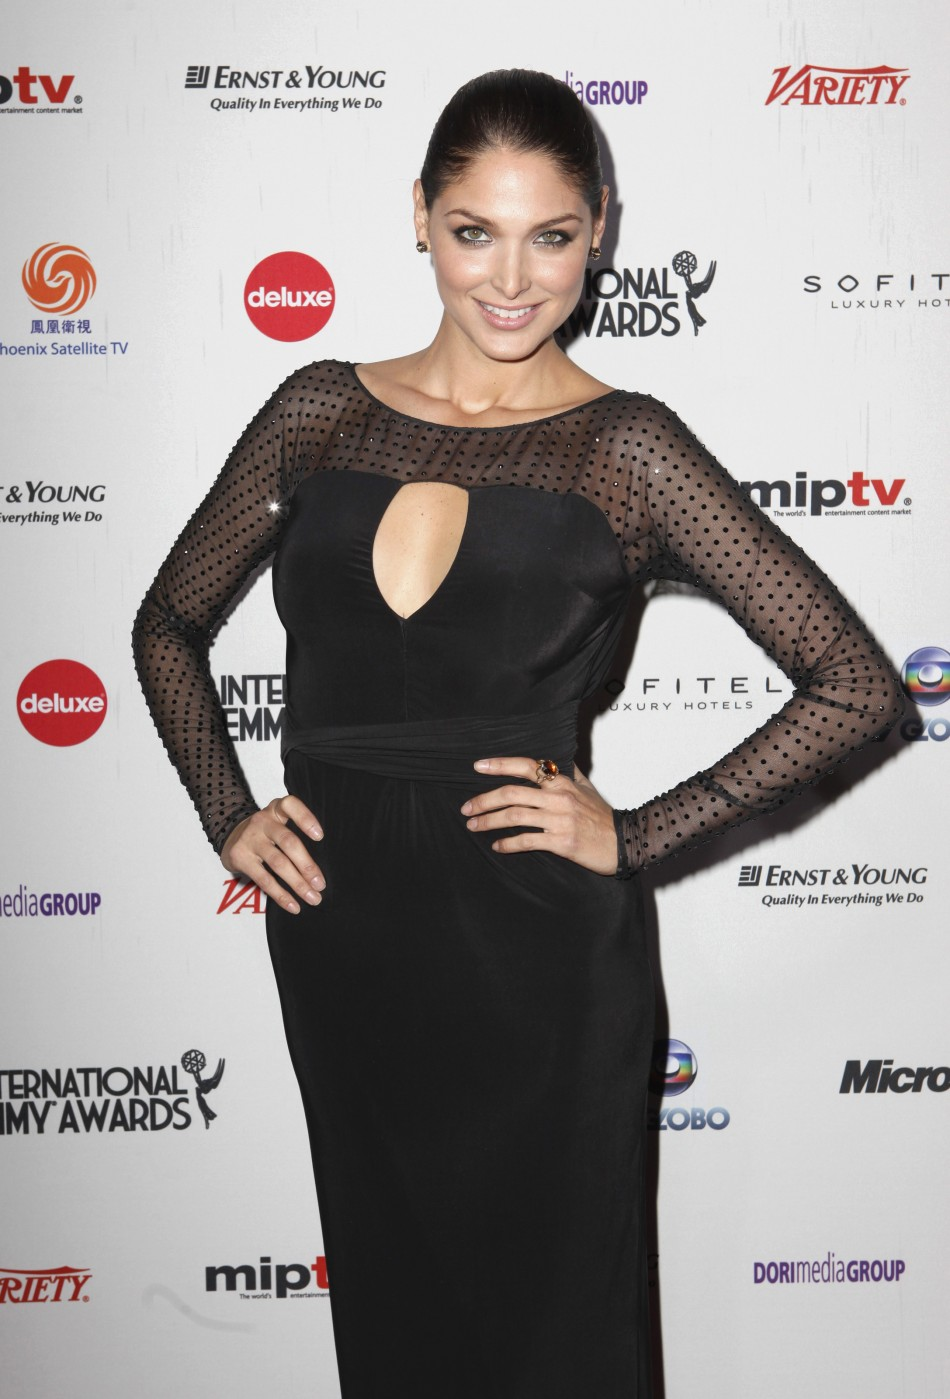 Actor Blanca Soto arrives at the International Emmy Awards in New York